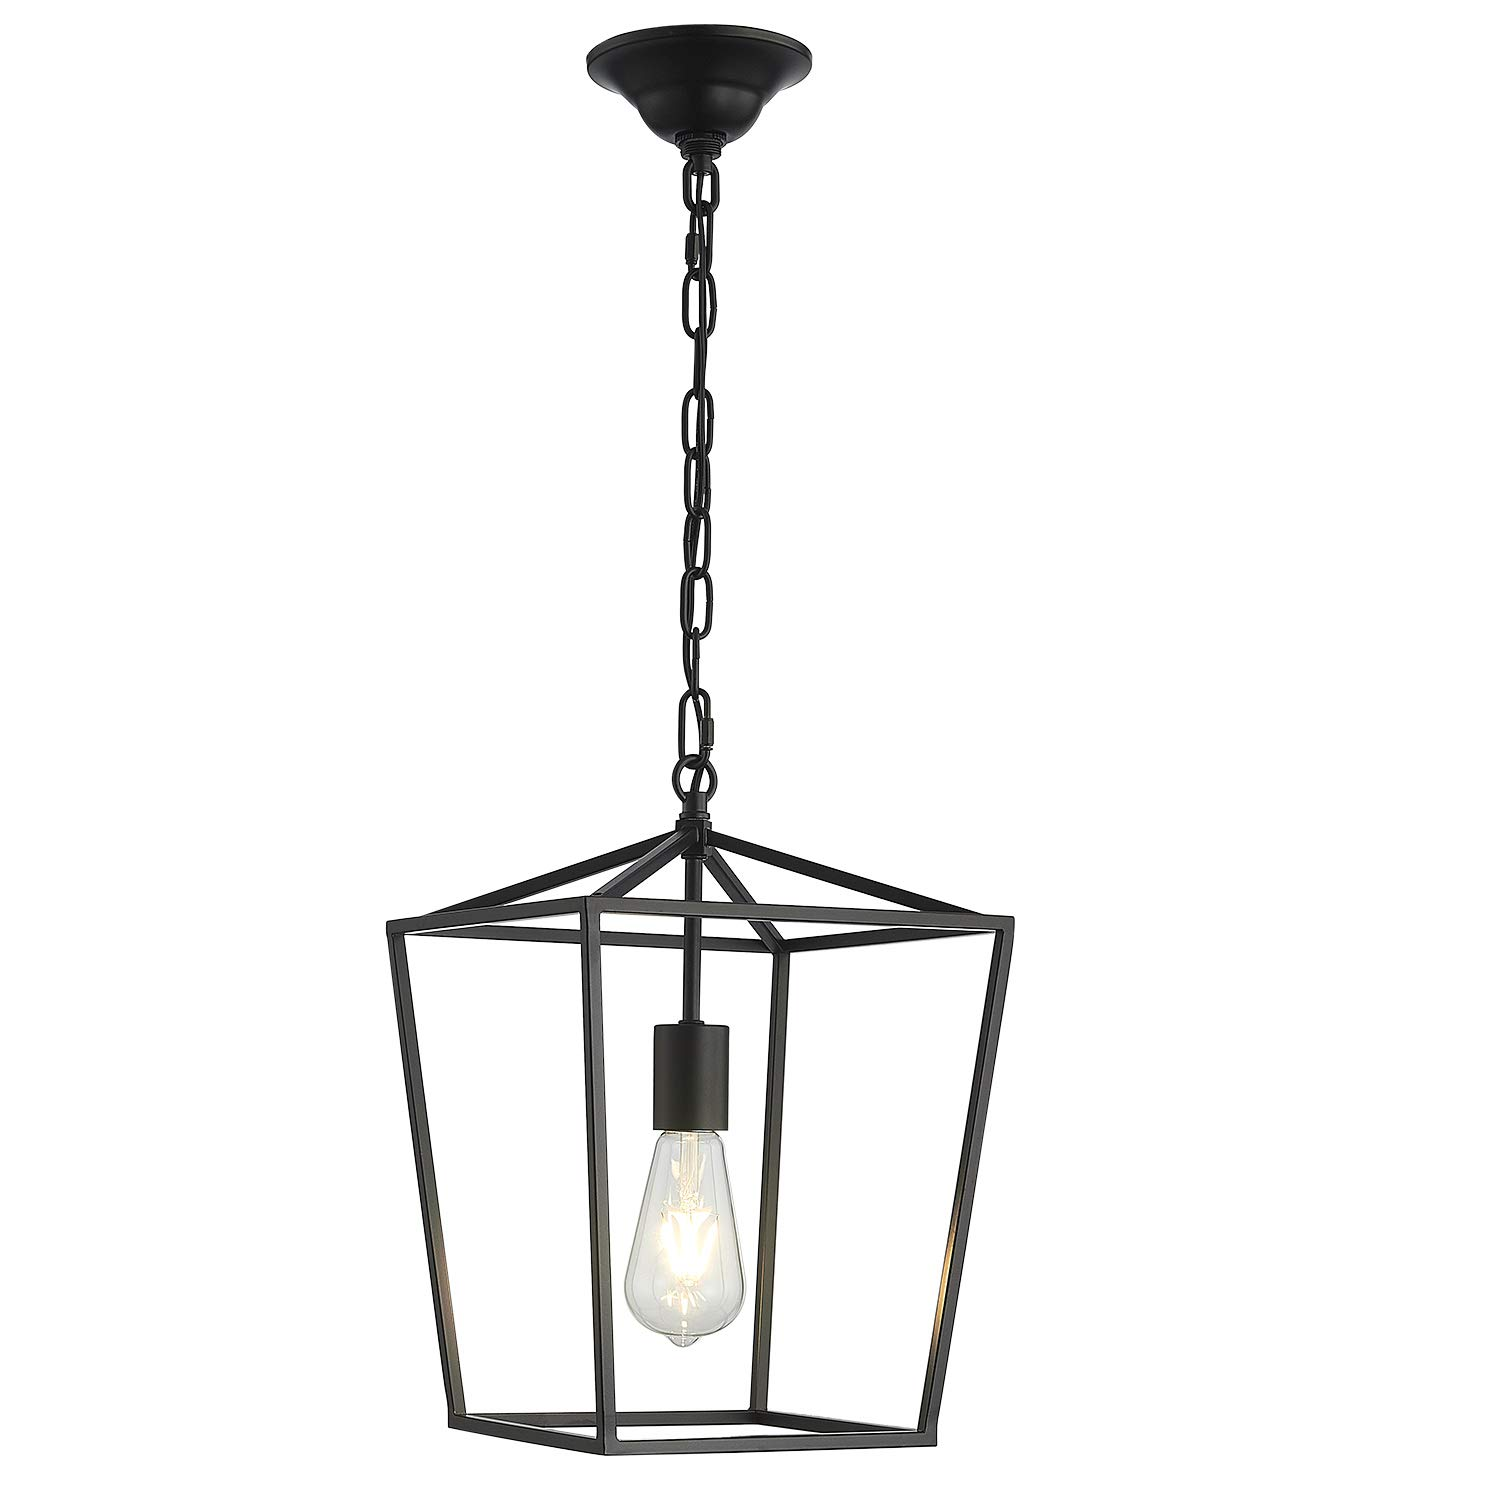 ANJIADENGSHI Lantern Pendant Light Industrial Vintage Lantern Iron Cage Hanging with 1 E26 Bulbs Lantern Chandelier for Traditional Dining Room Bar Cafe, Matte Black